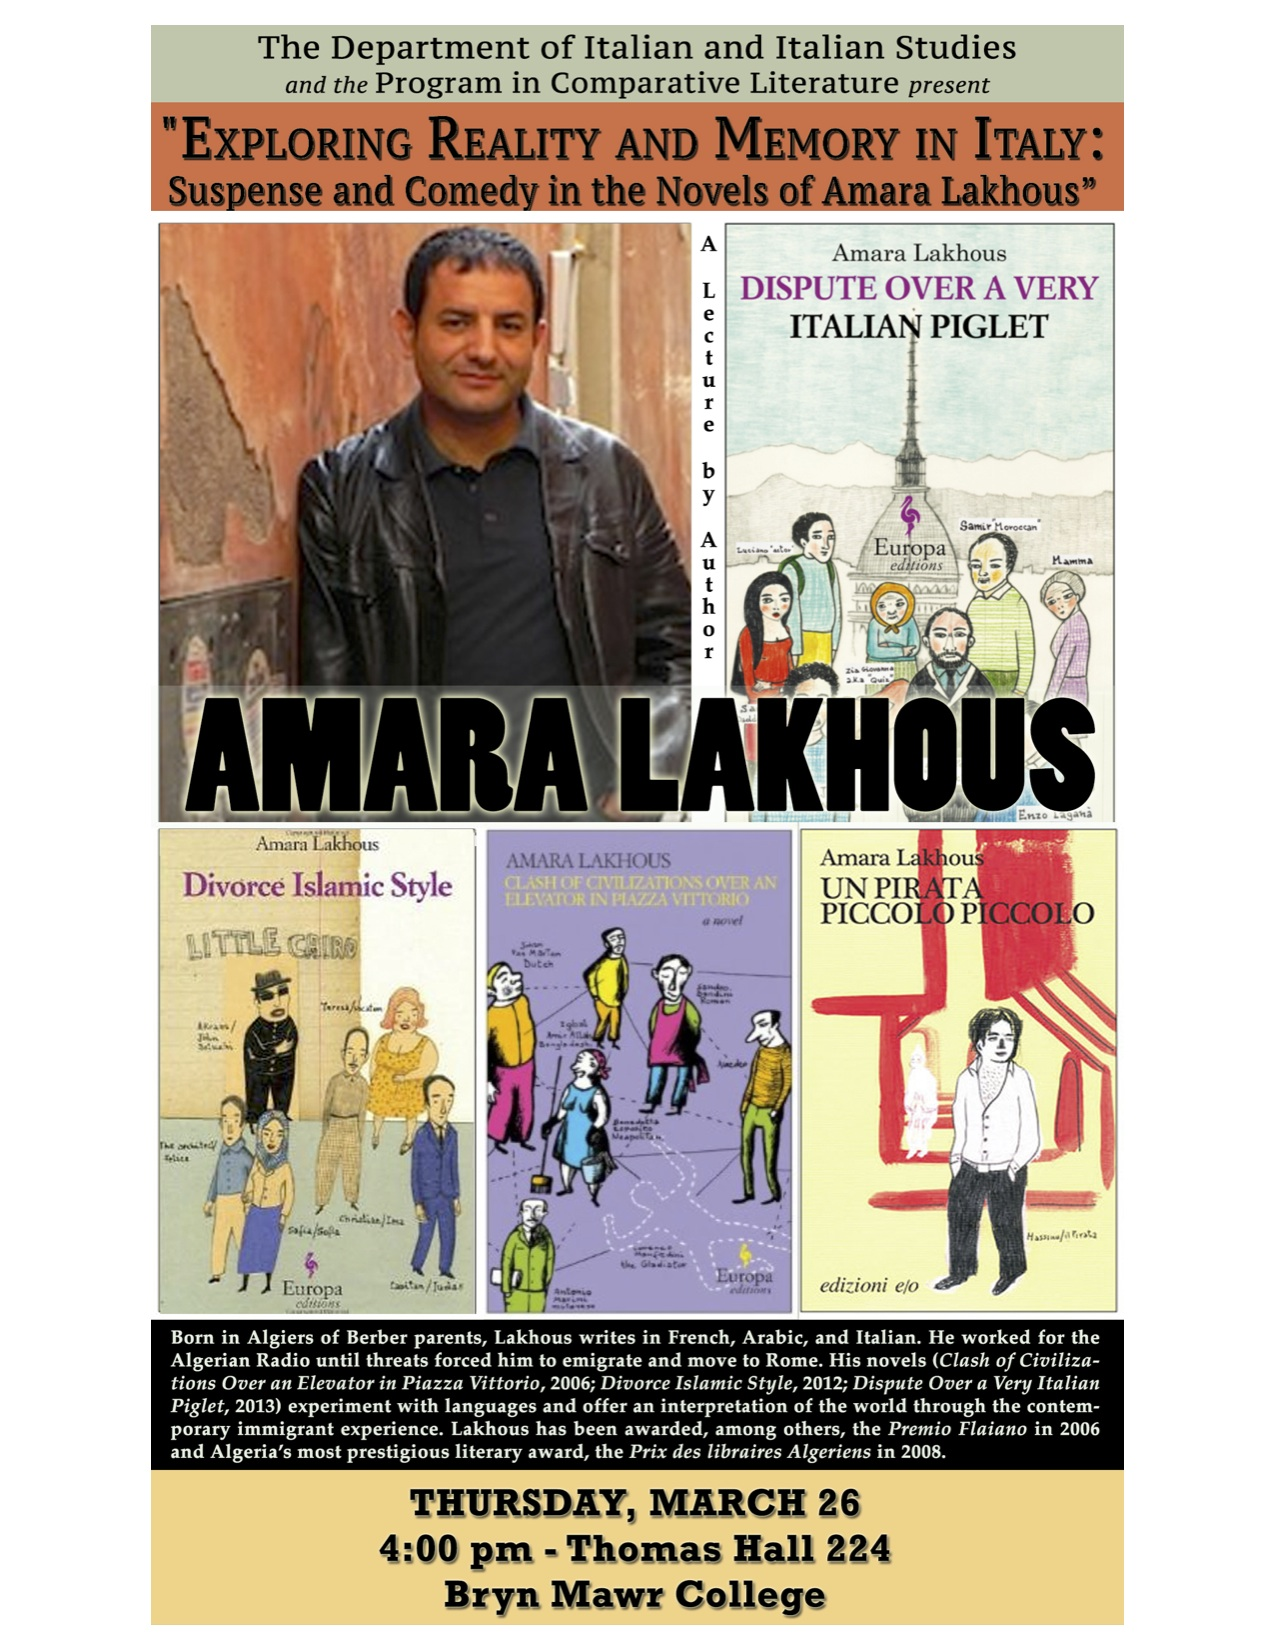 The Algerian writer will talk about his works on March 26 at 4pm.